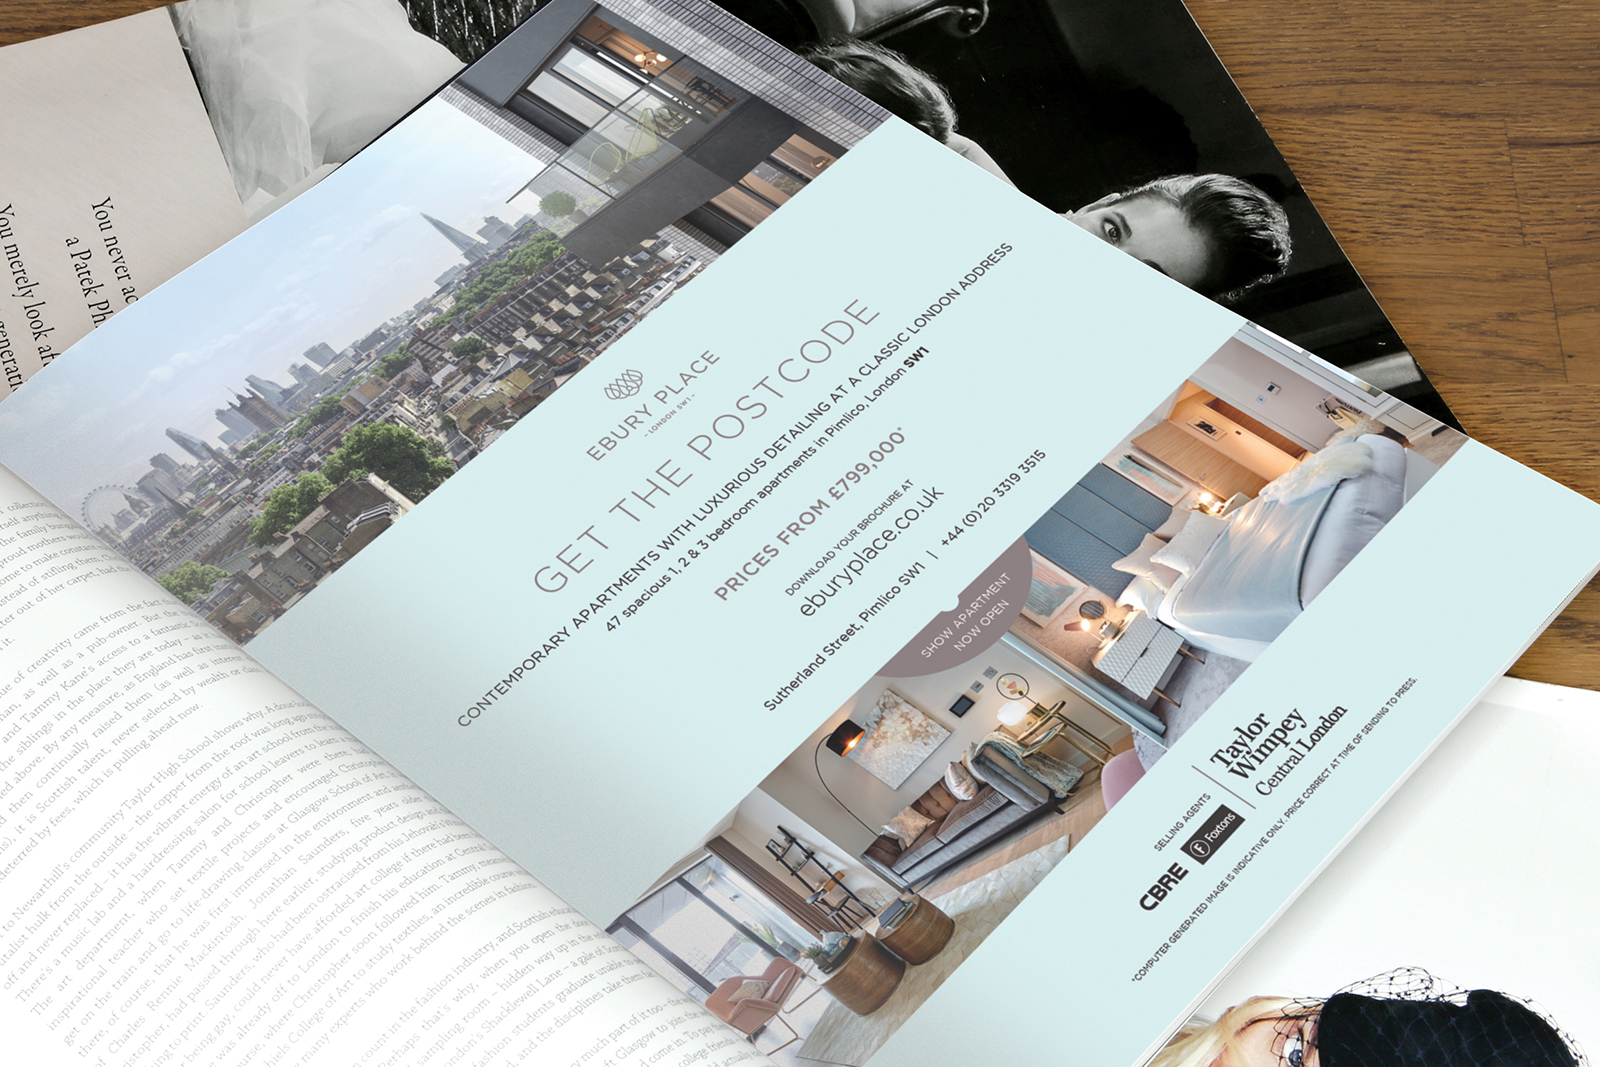 Print & digital marketing for Taylor Wimpey Central London and their 'Capital Collection' of London developments